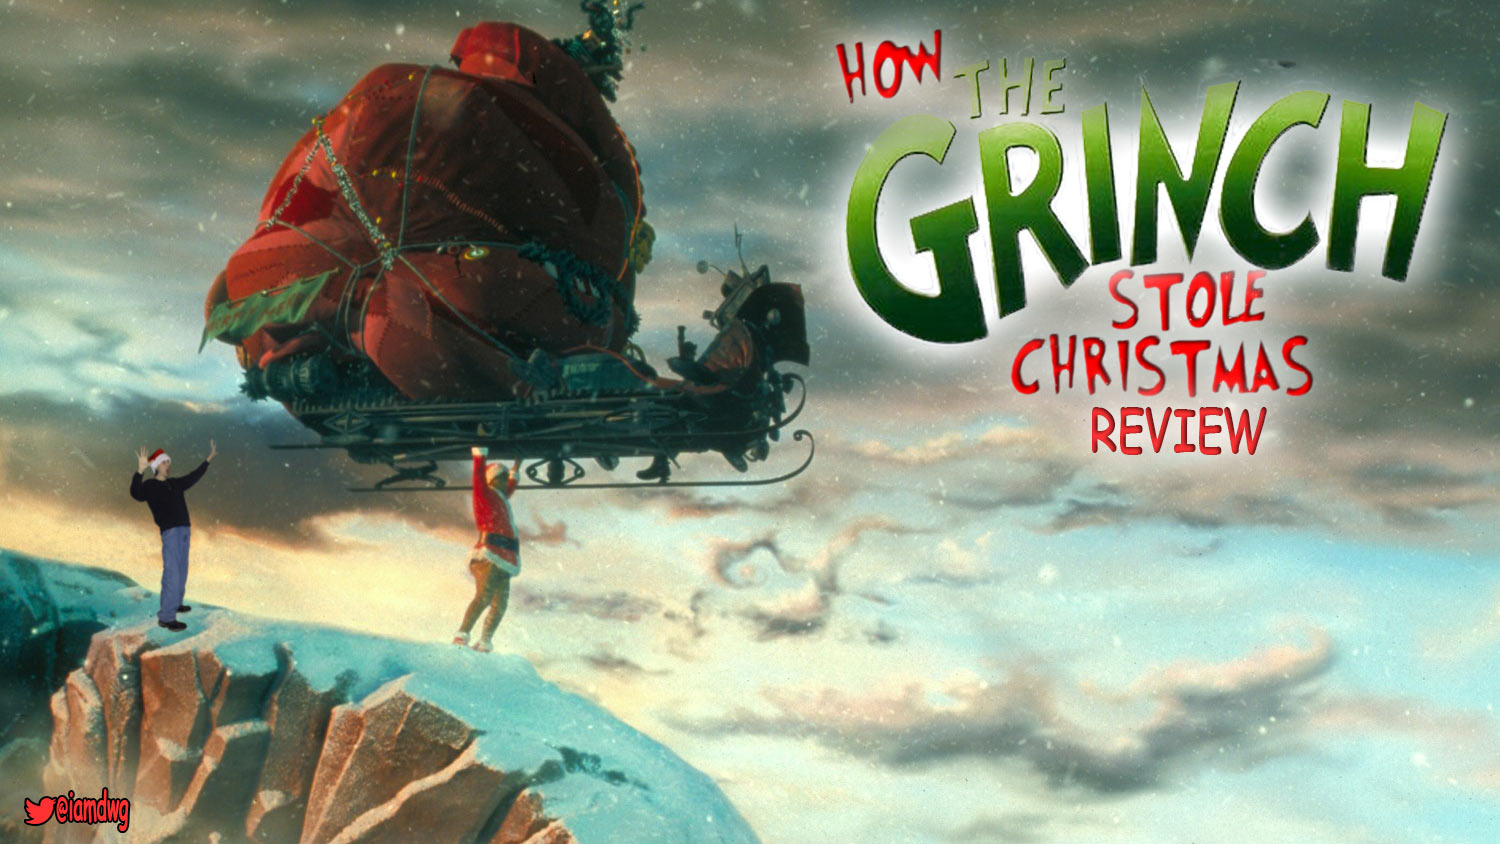 How the Grinch Stole Christmas' (2000) | Dave Examines Movies